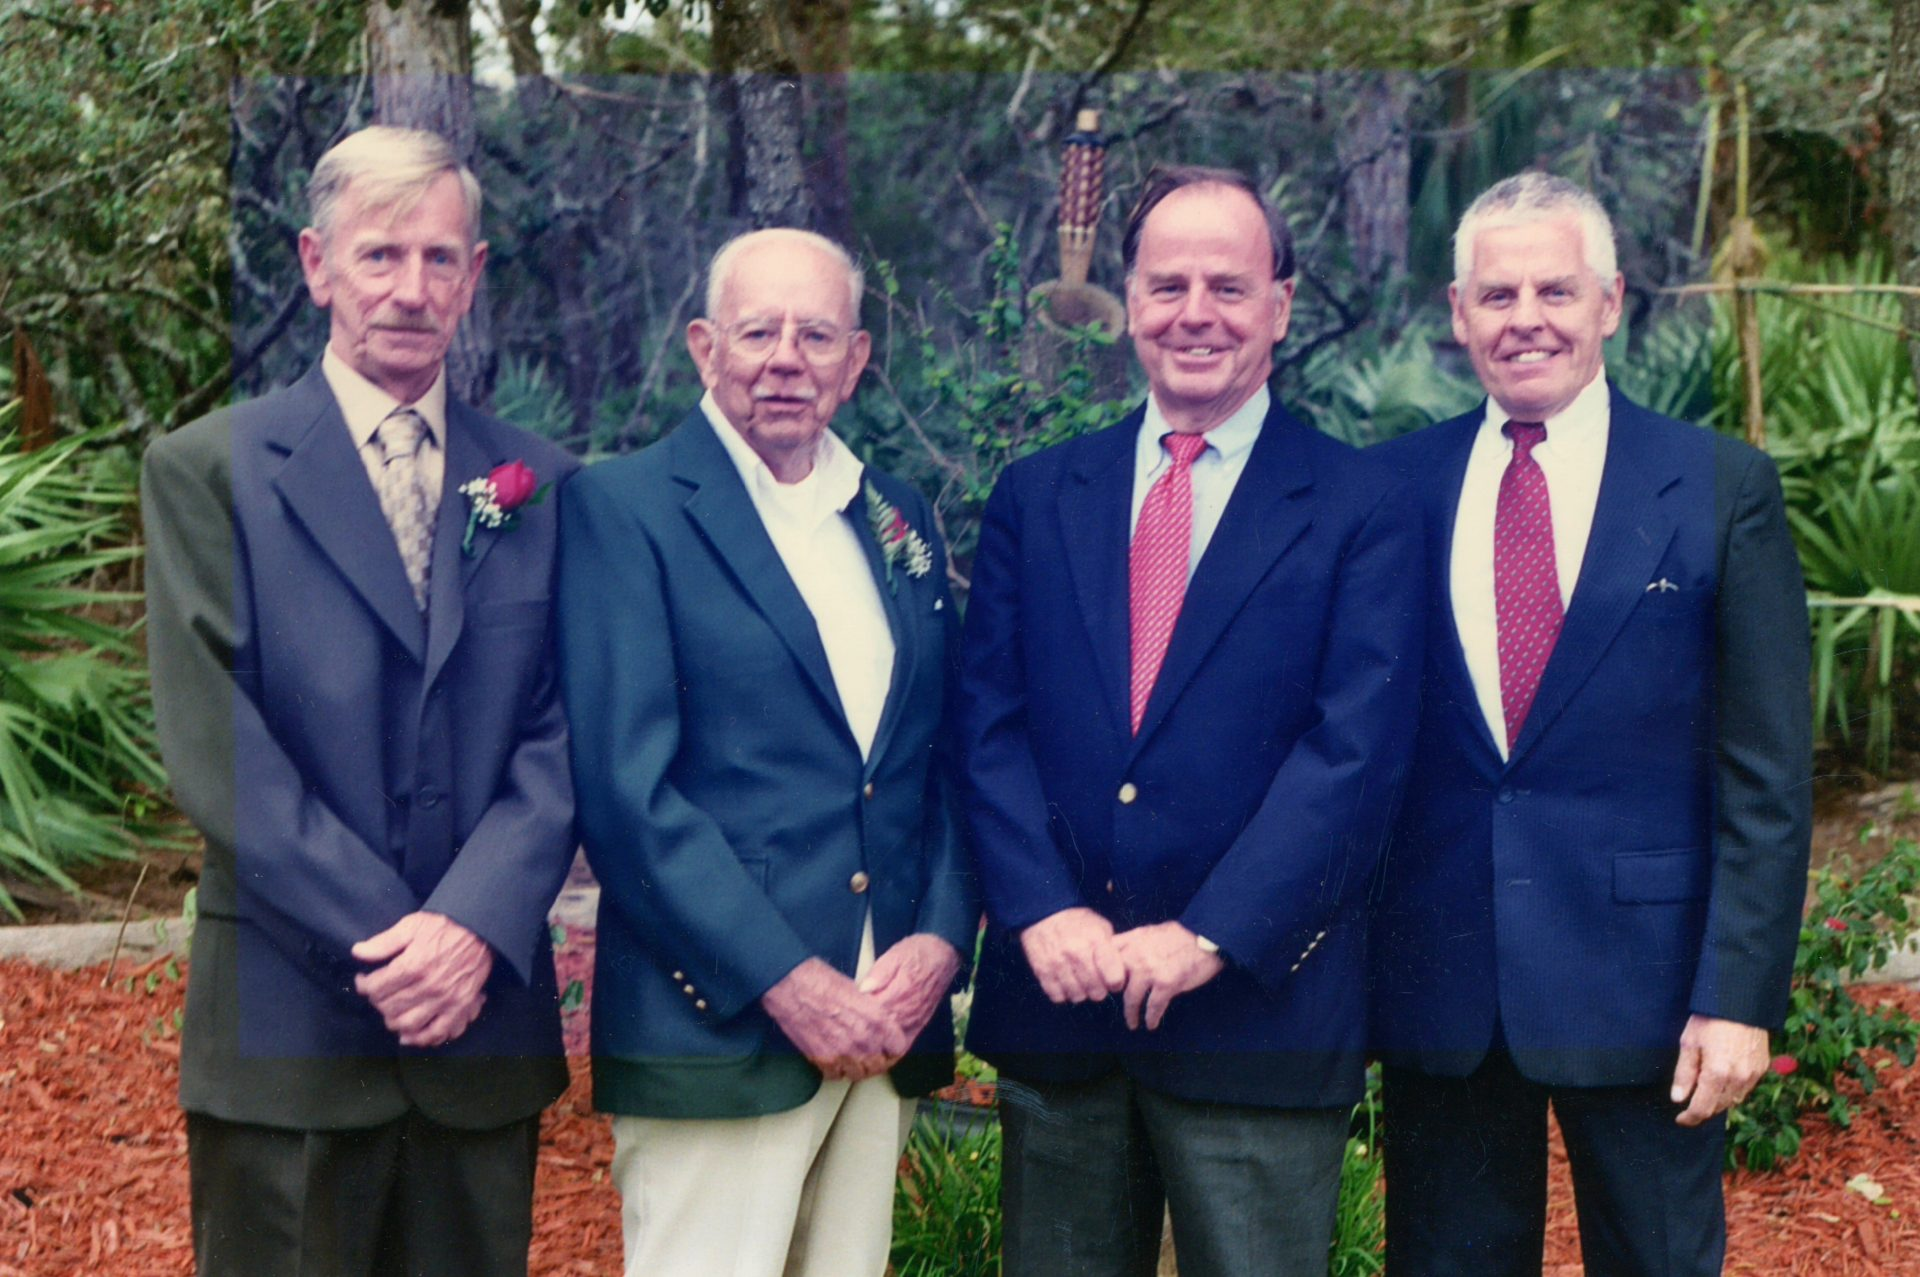 Russell and his Father and Brothers